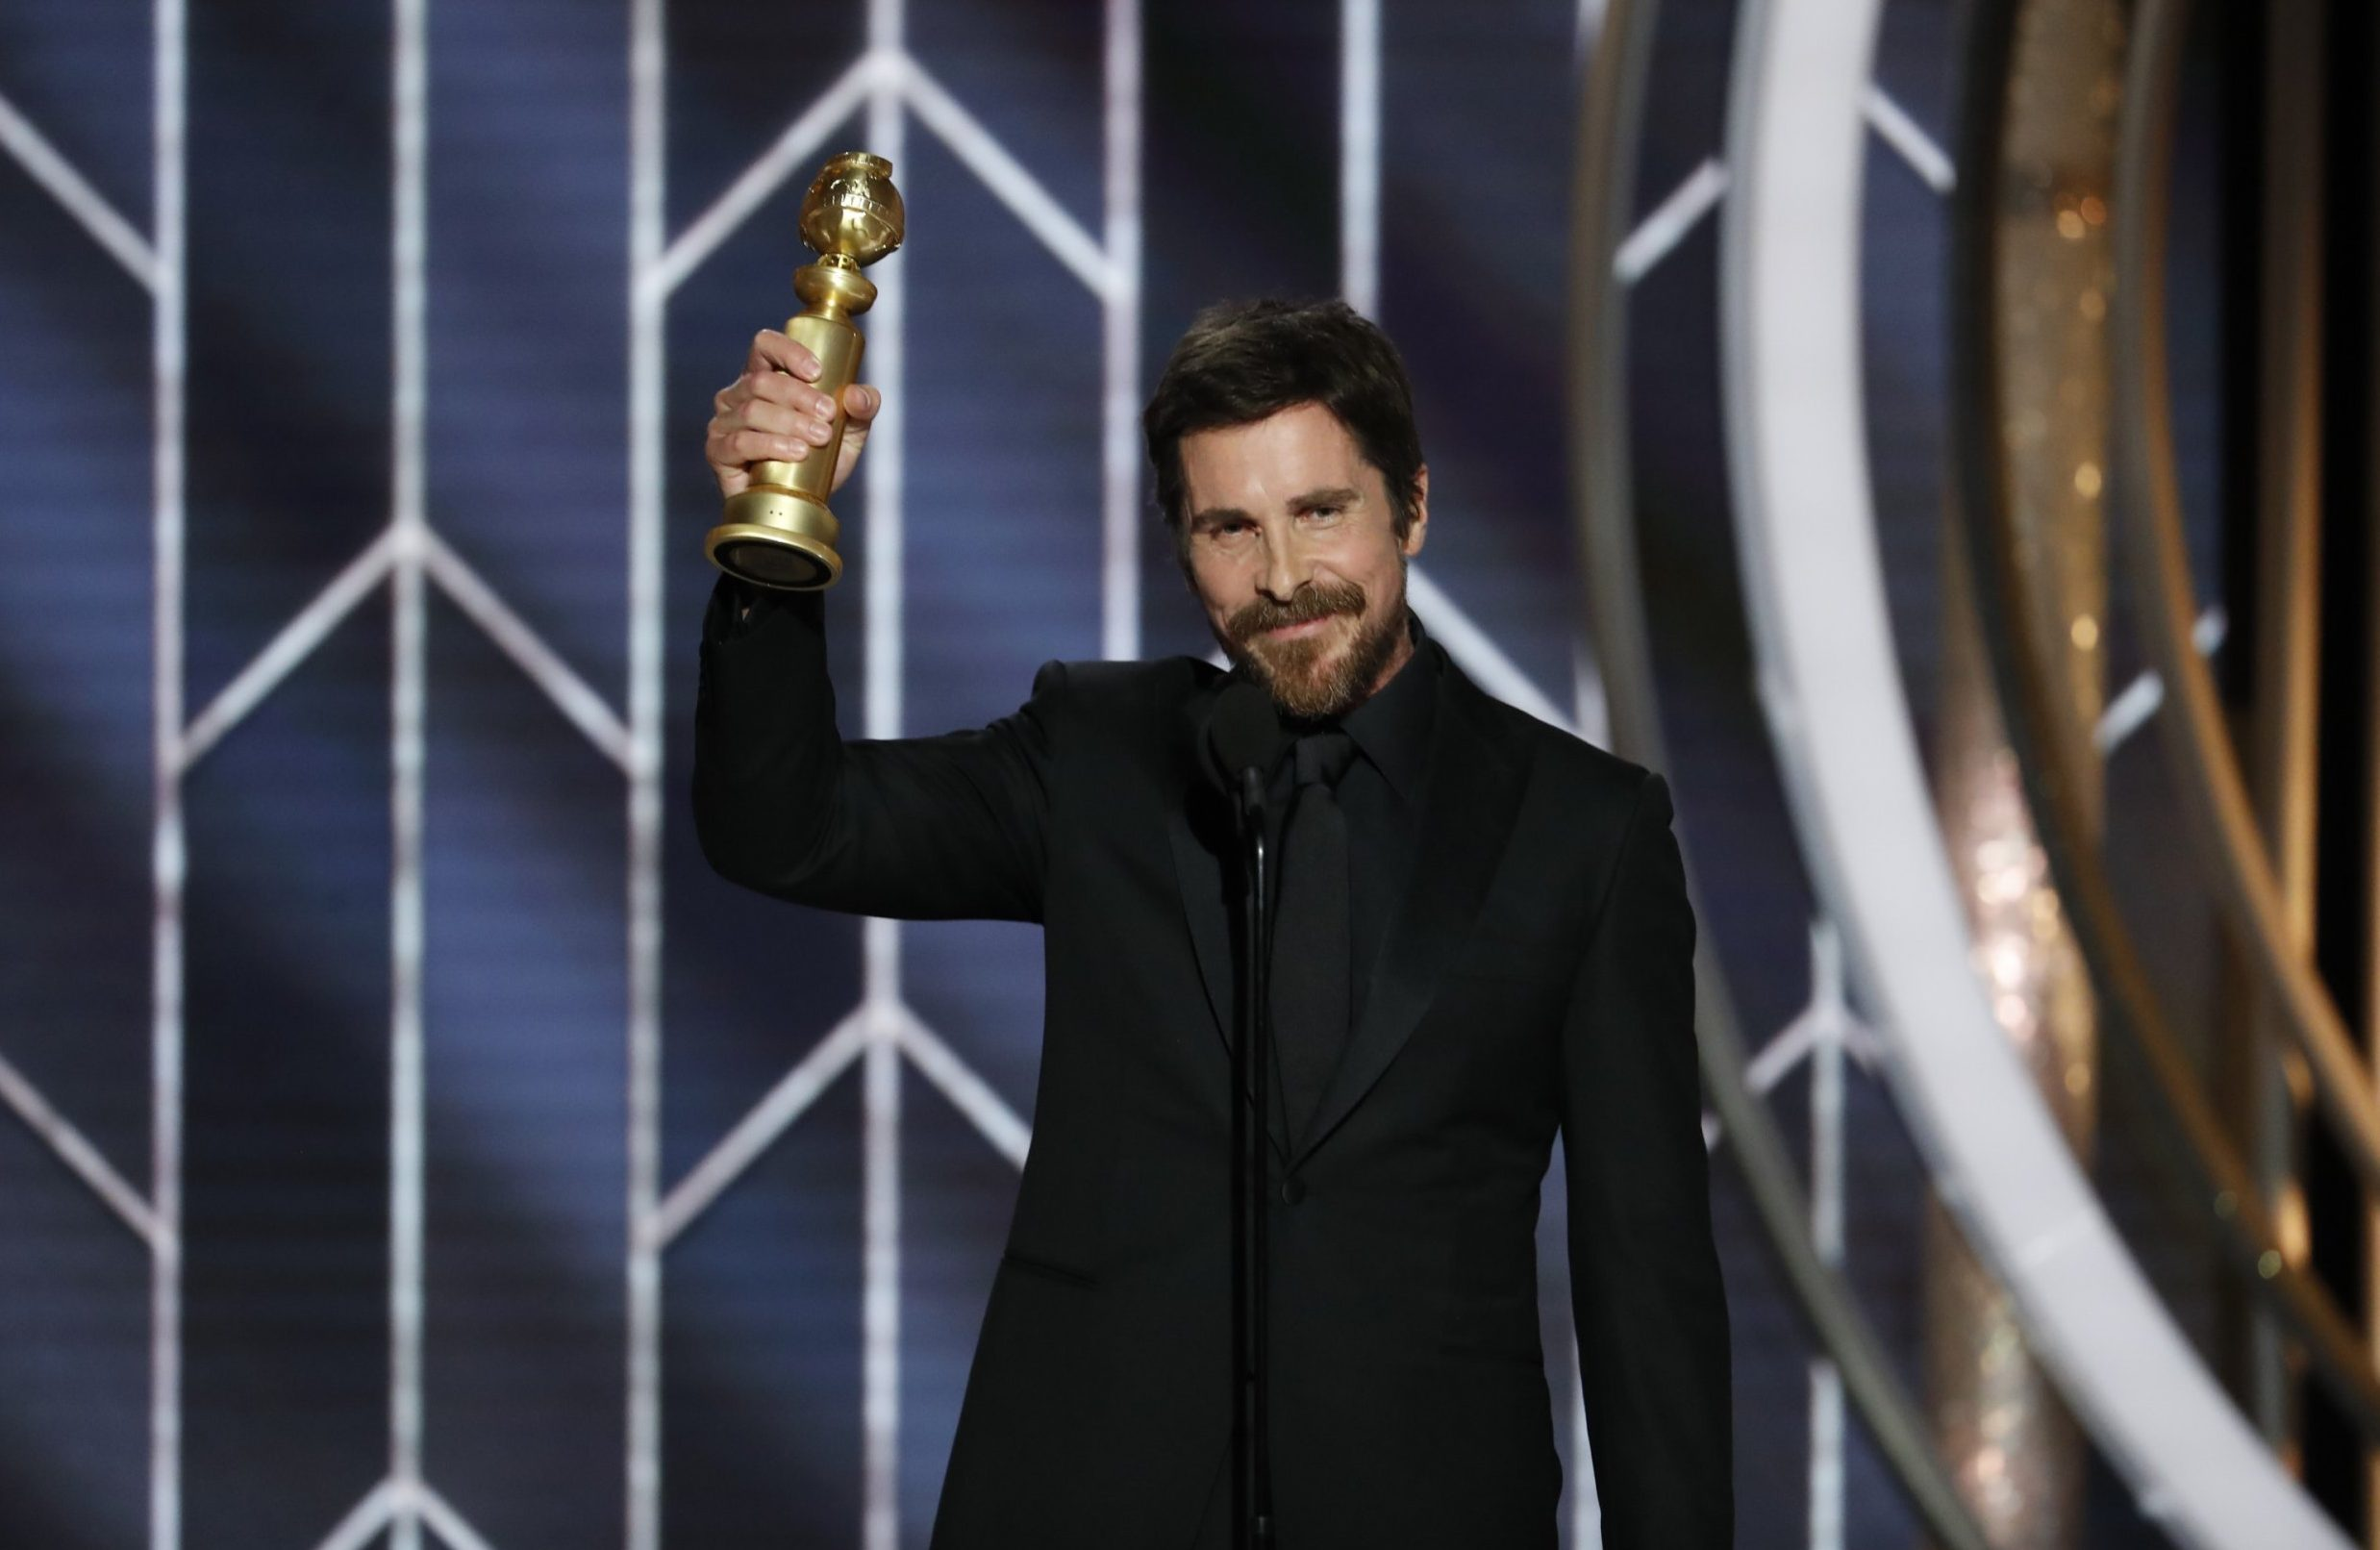 Golden Globes 2019: Everyone has somehow forgotten Christian Bale is British and it's a real ride